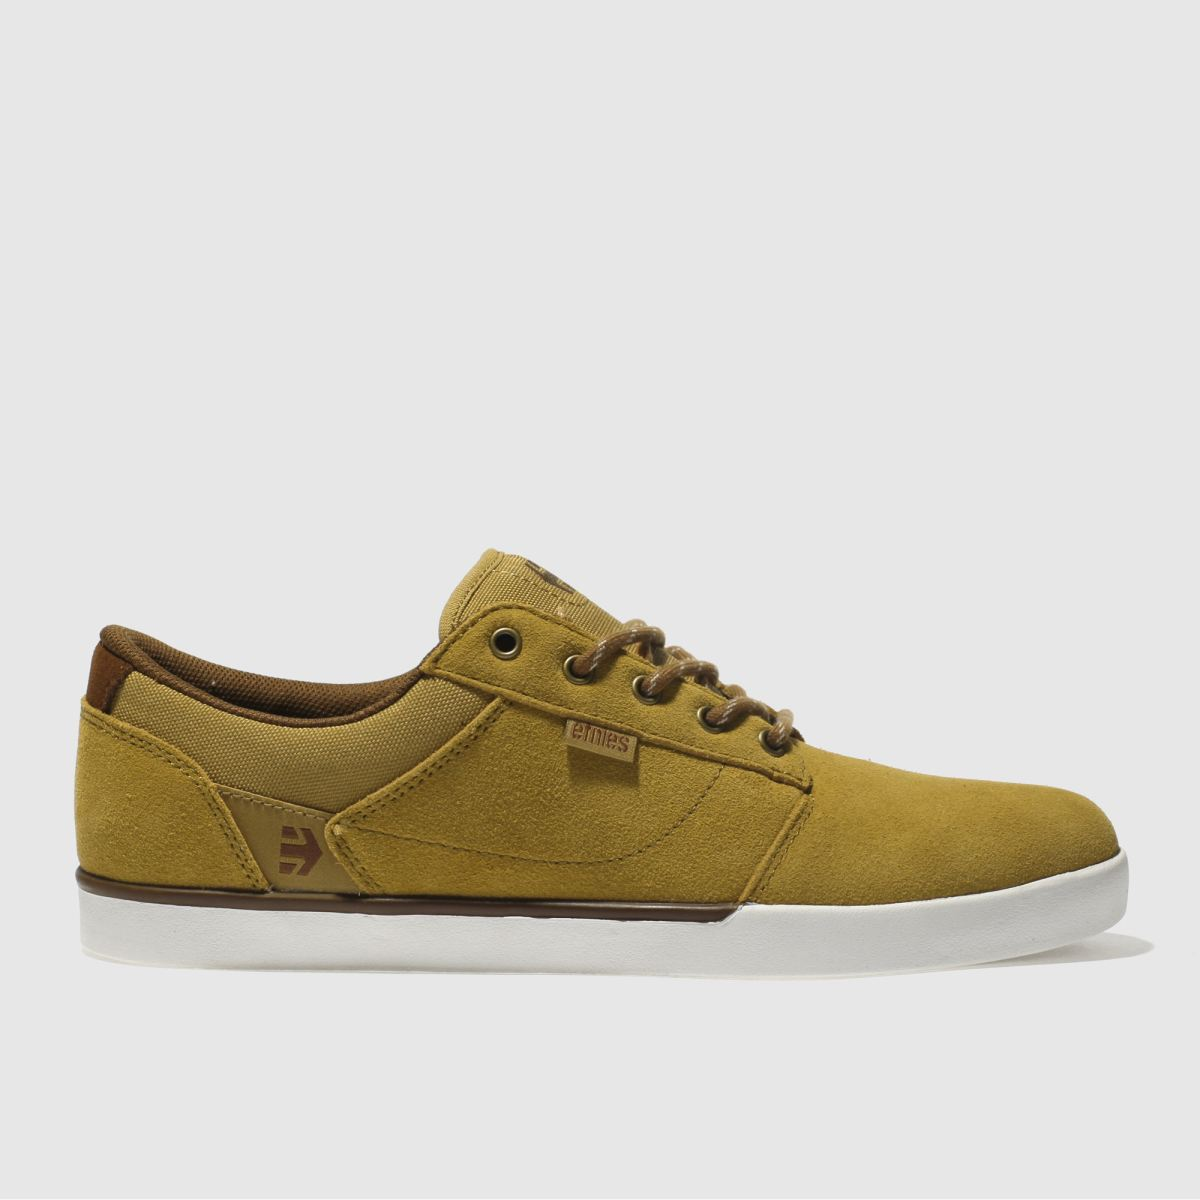 Etnies Etnies Tan Jefferson Trainers